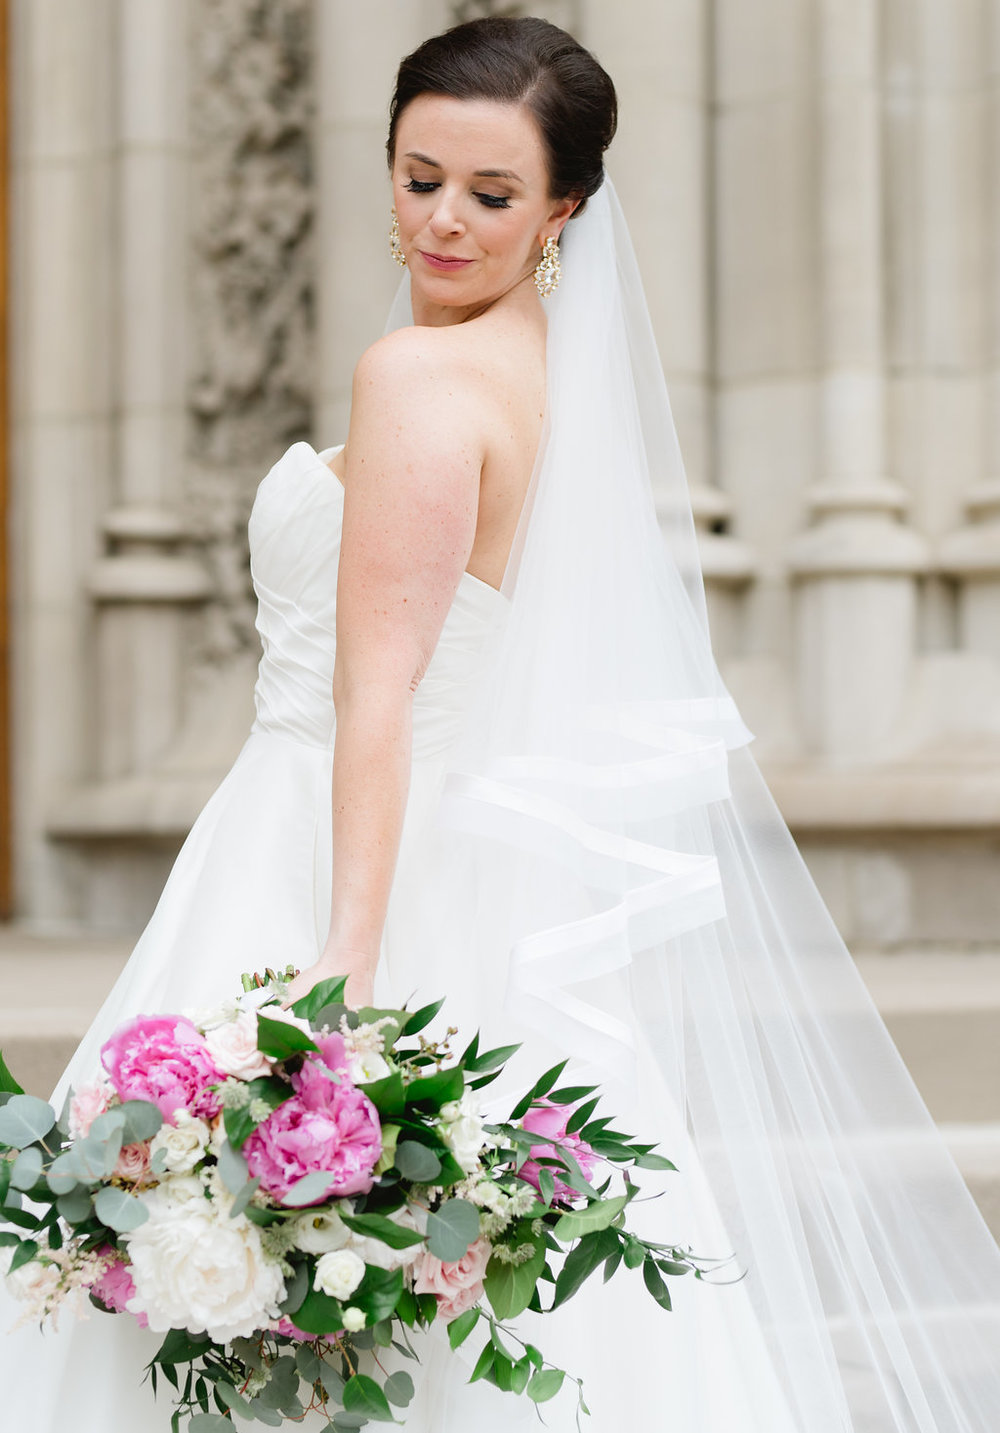 Bride in wedding dress holding pink and white wedding bouquet